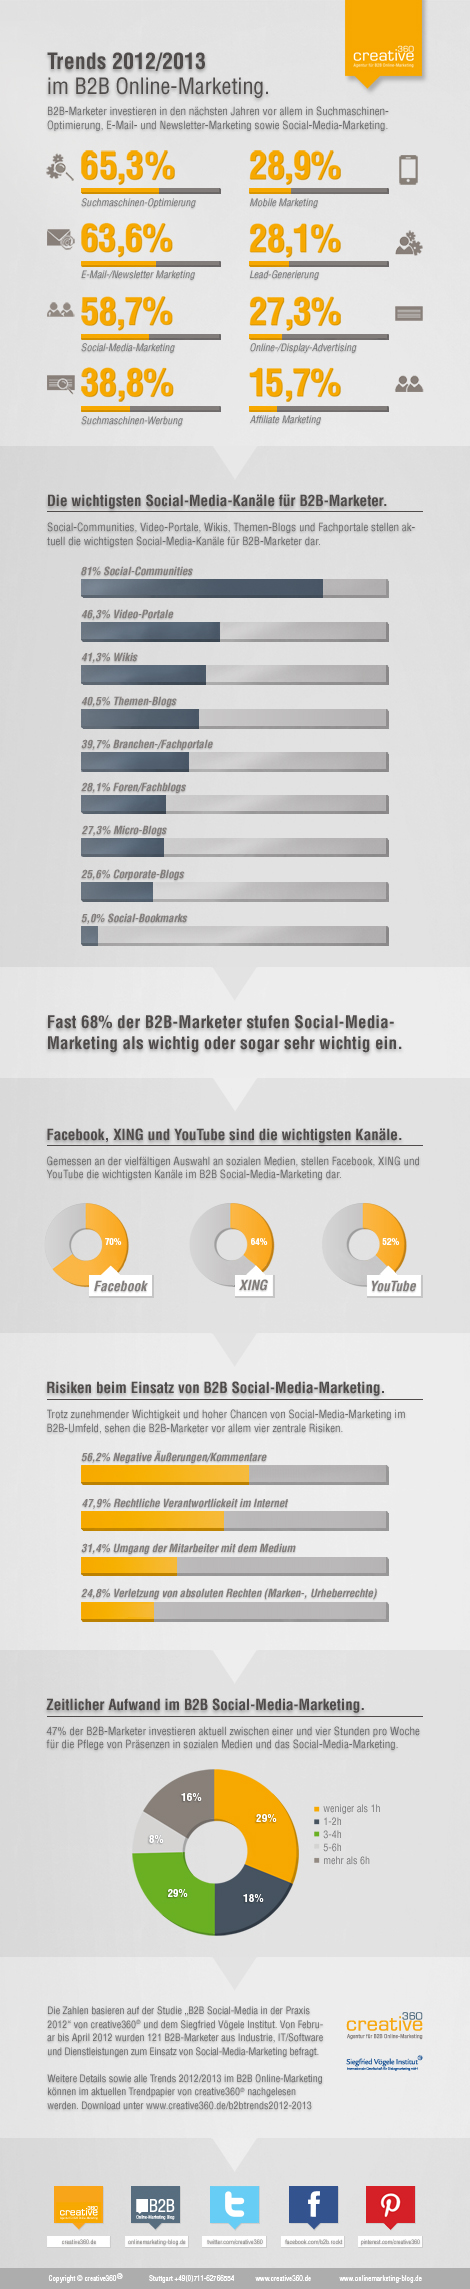 Trends 2012/2013 im B2B Online-Marketing und Social-Media-Marketing (Infografik)